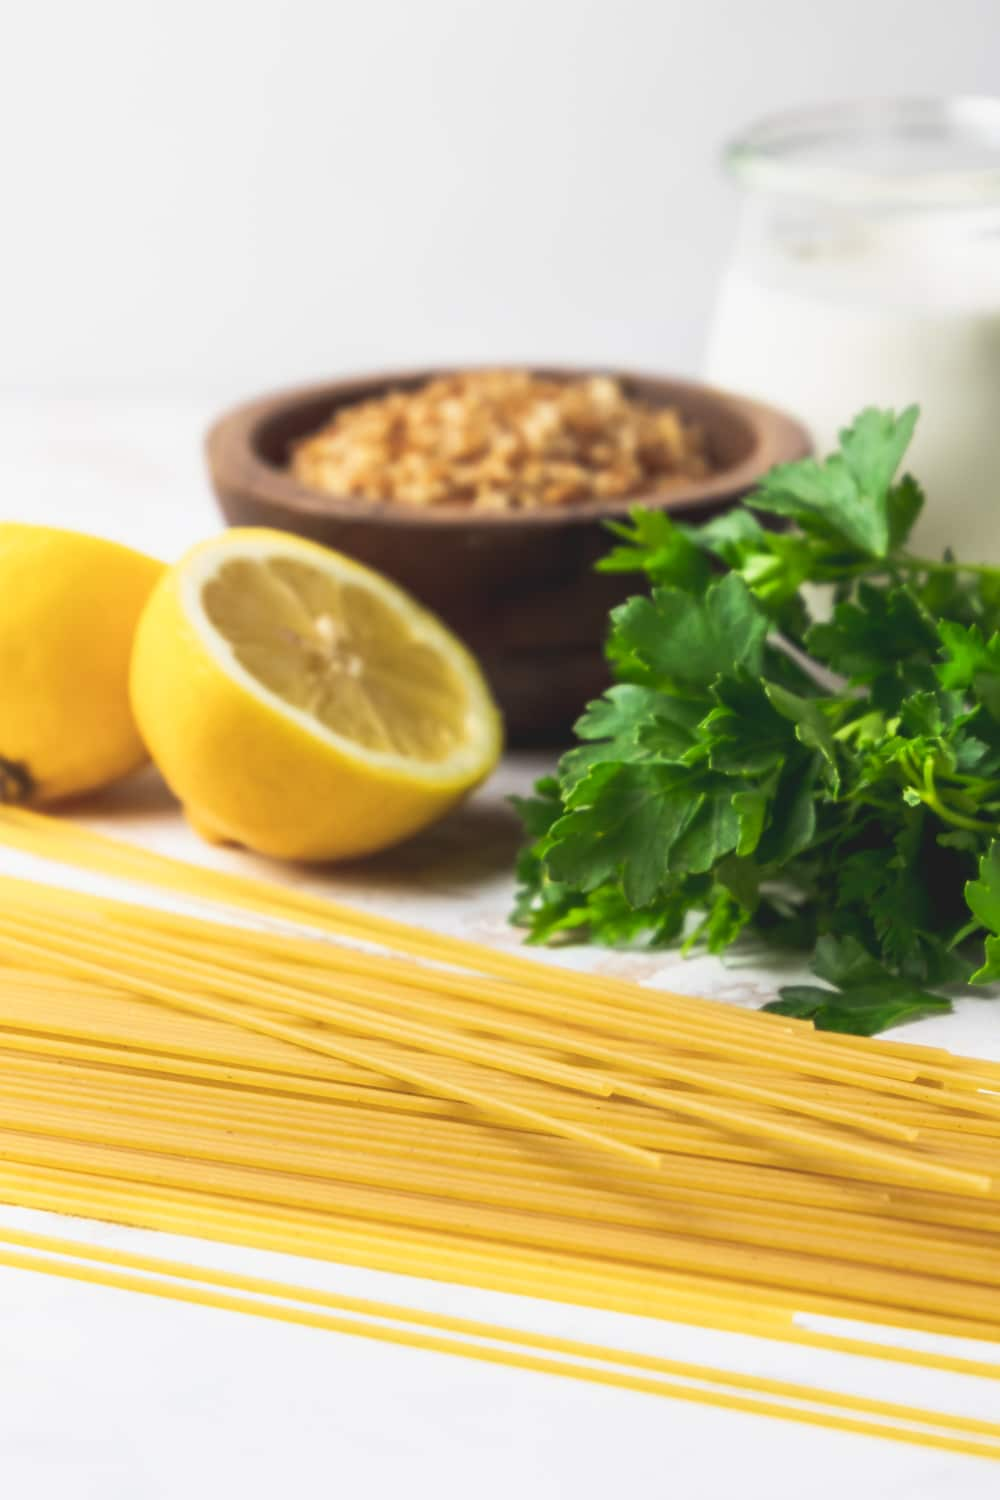 lemons, parsley, heavy cream, dried spaghetti, and crunchy breadcrumbs